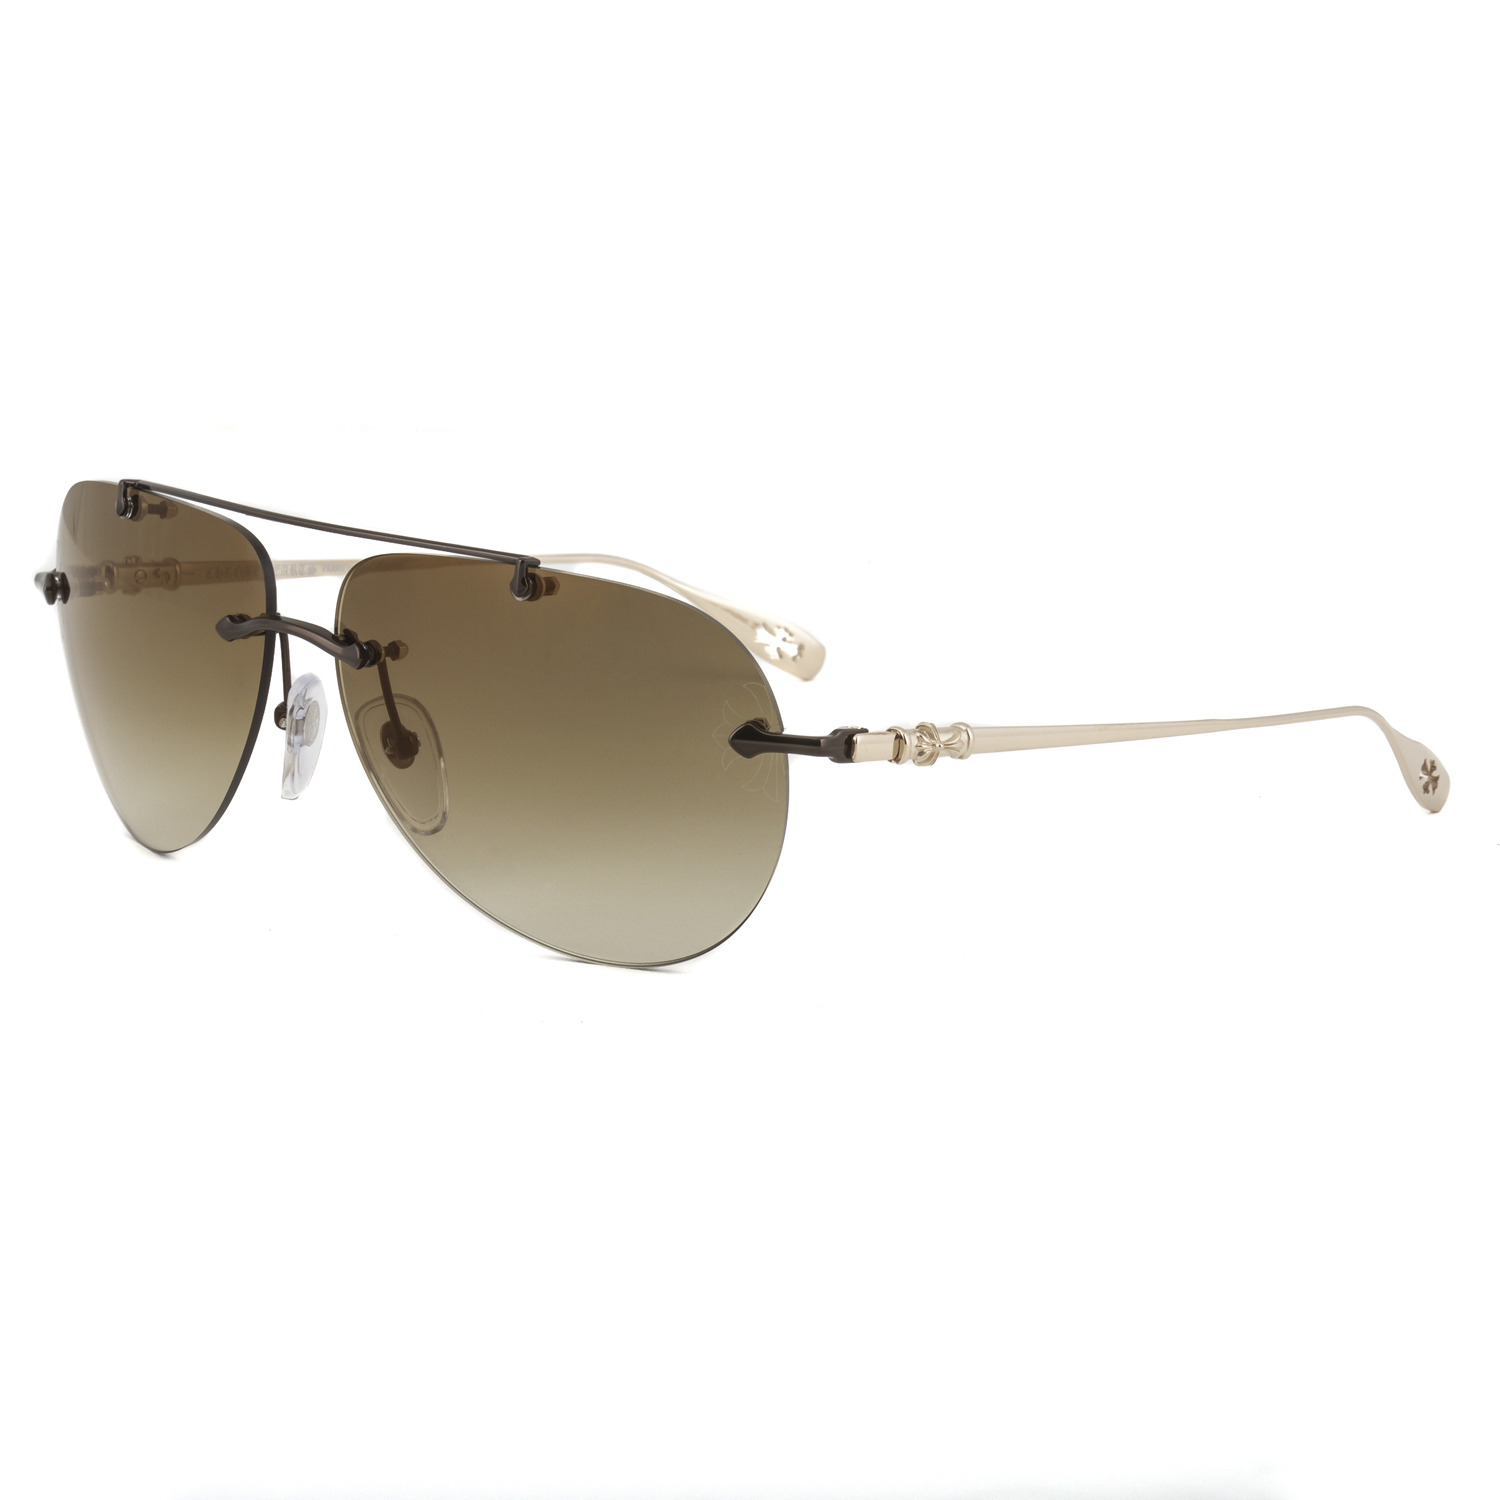 094808f943 Chrome Hearts Stains V Sunglasses Shiny Chocolate Brown Gold Frame Gradient  Lens